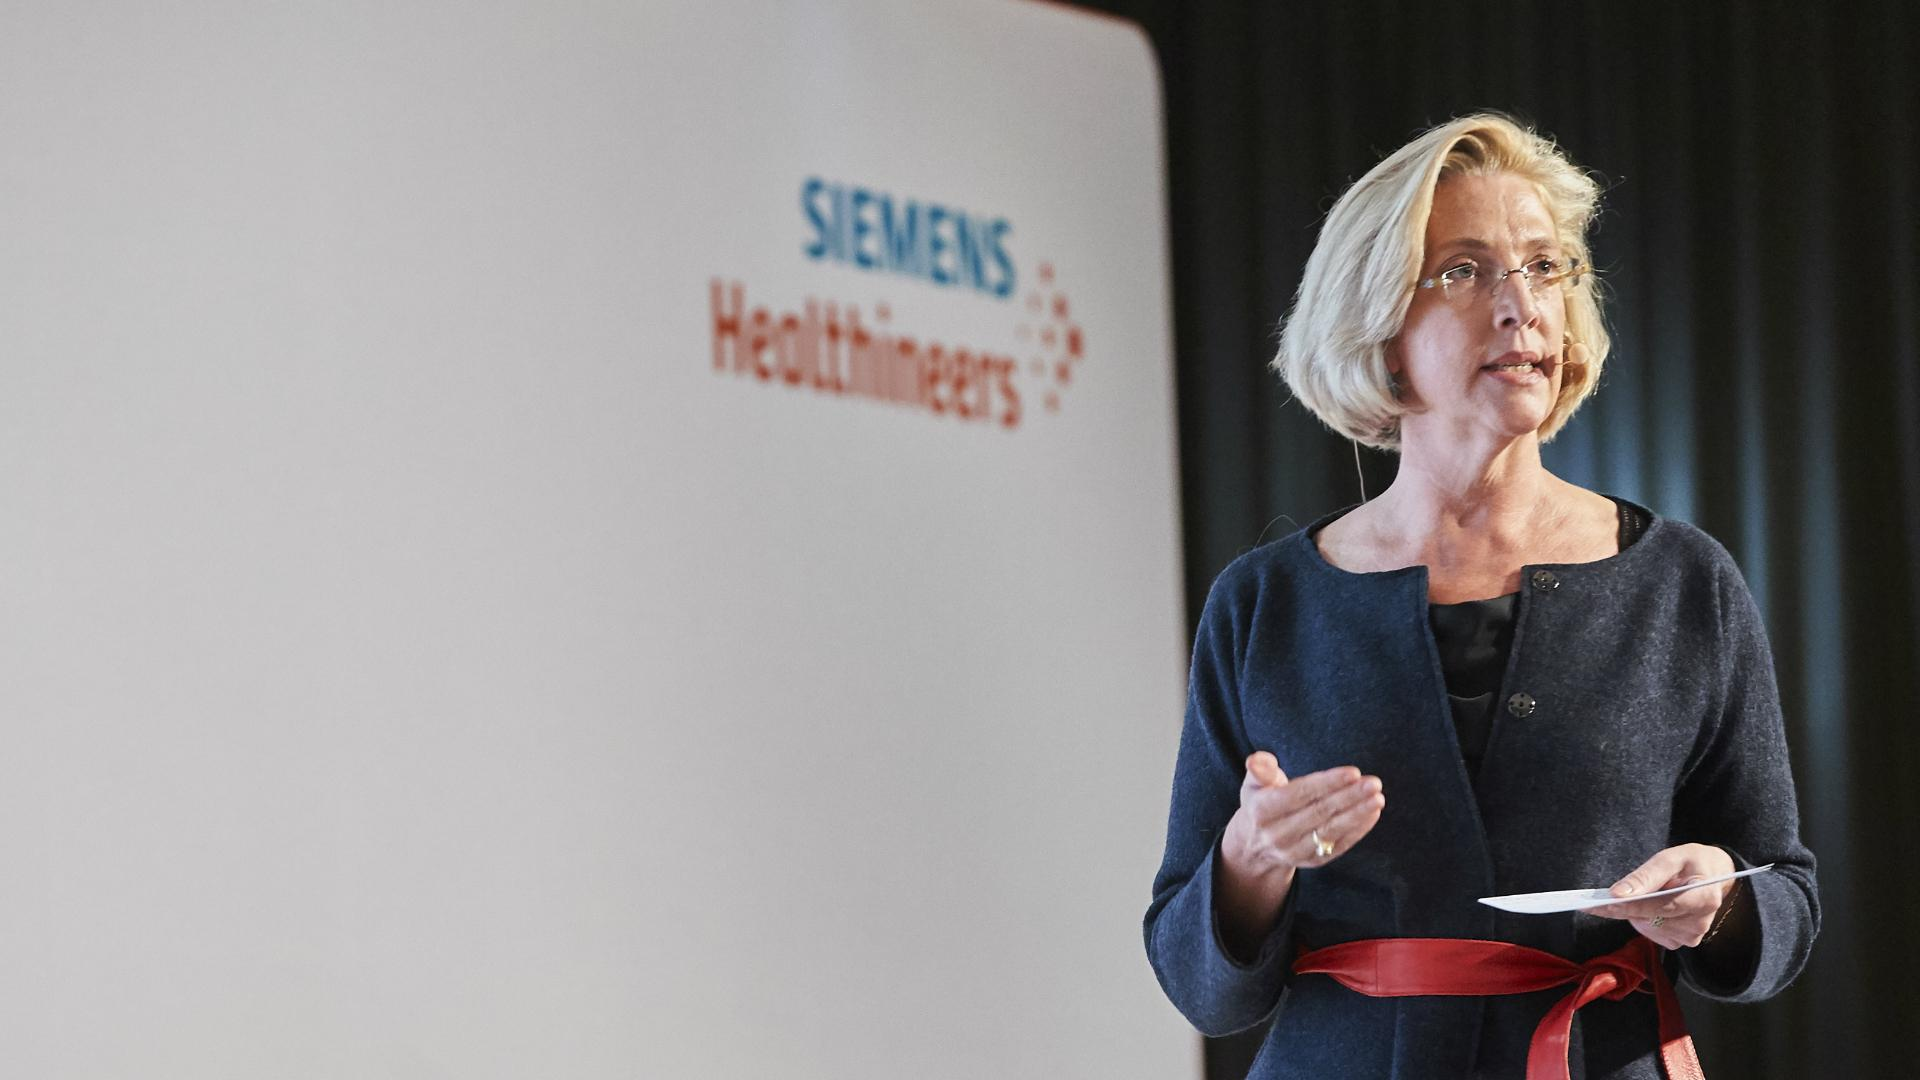 Melissa Hathaway giving a presentation on cybersecurity in the healthcare industry at the Executive Summit 2018